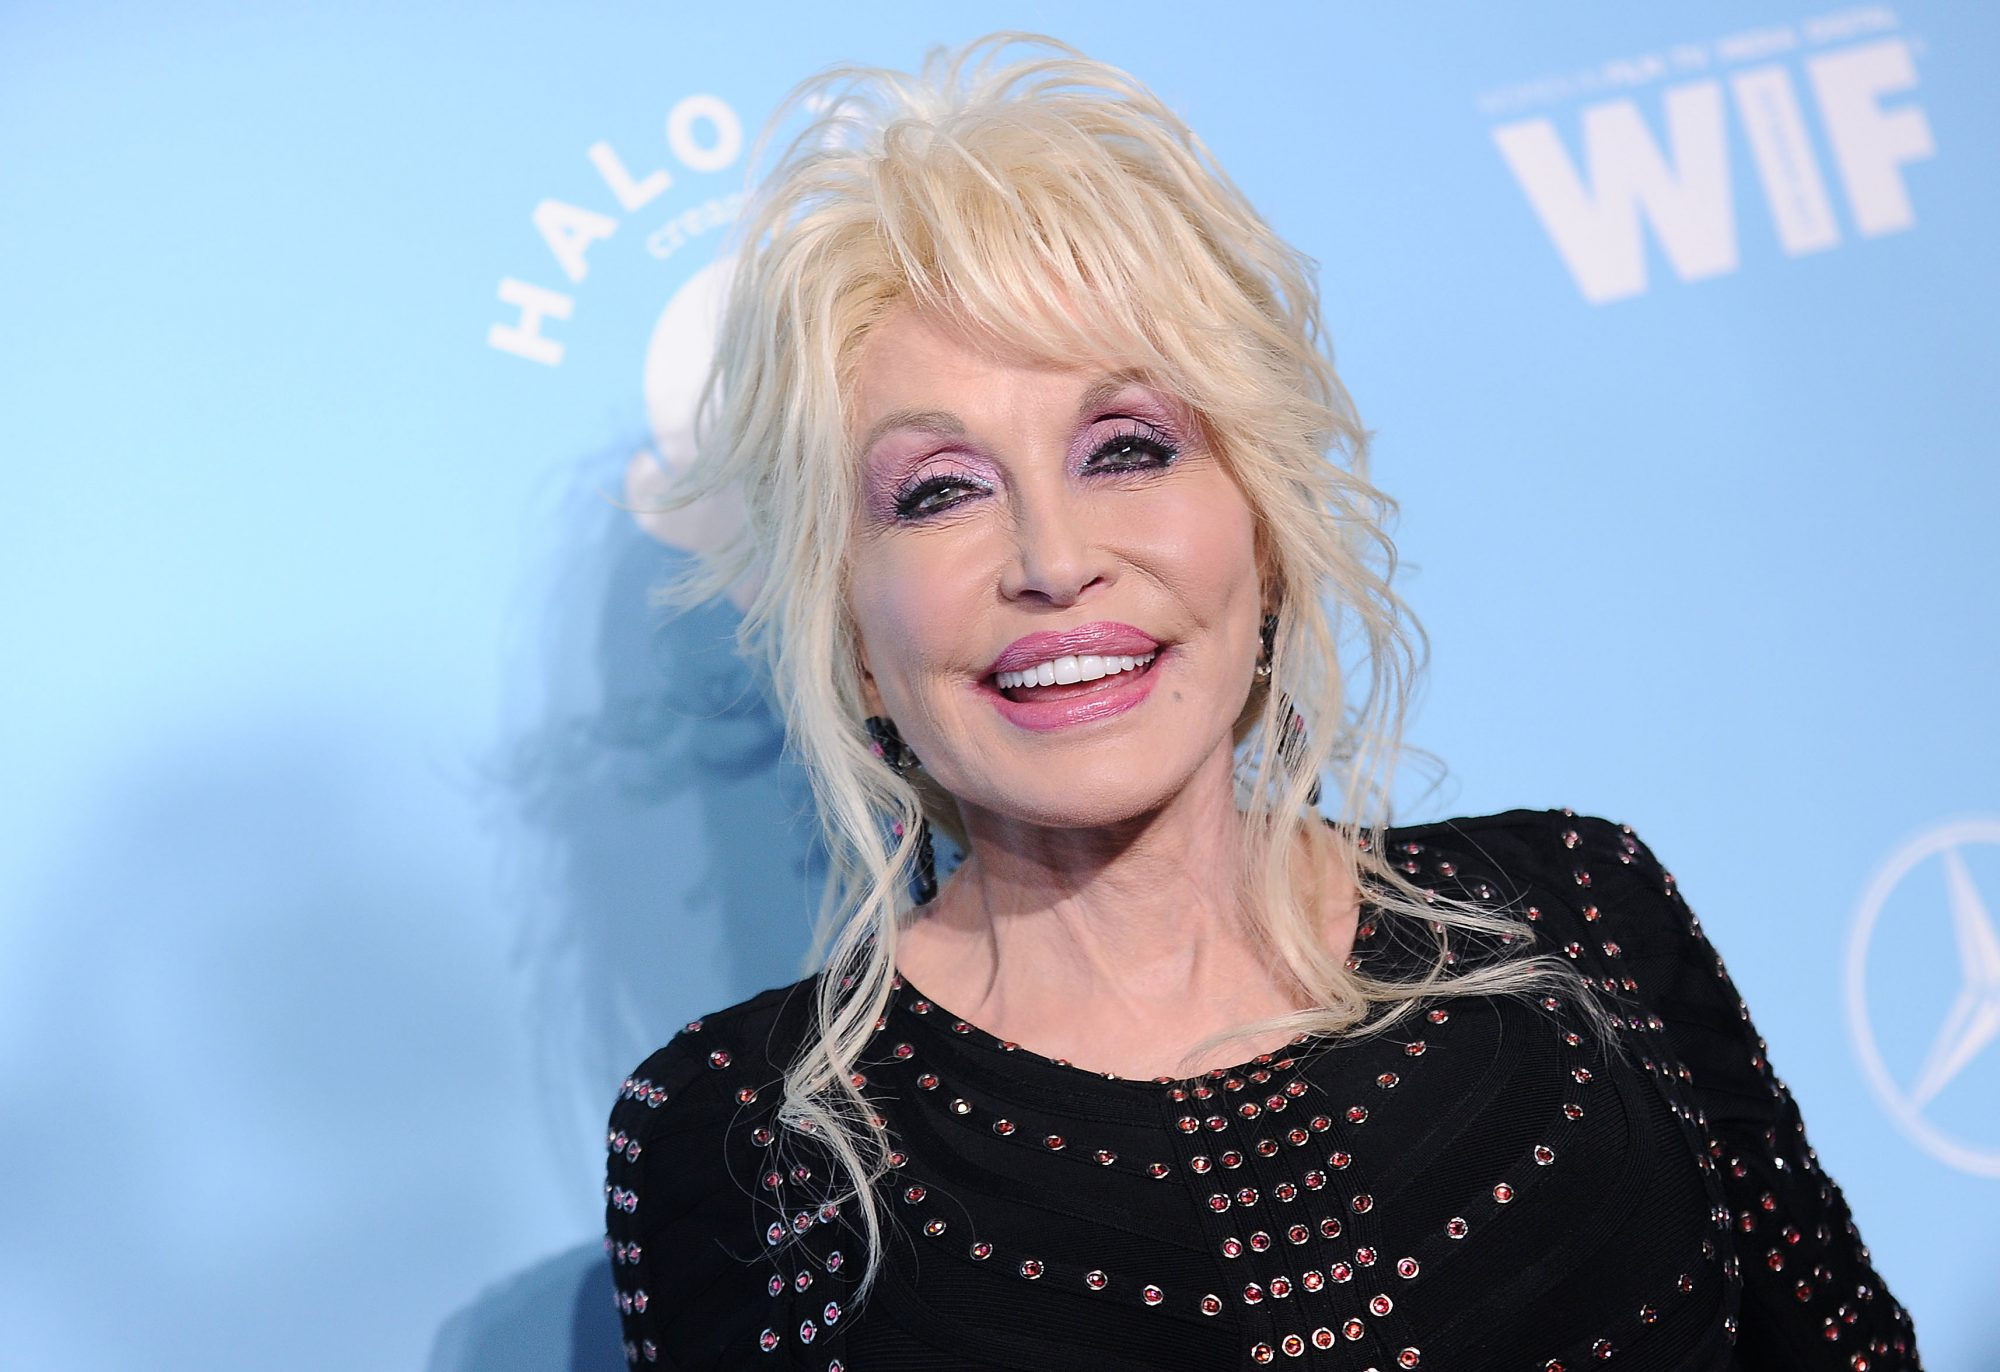 Dolly Parton Smiling September 2017